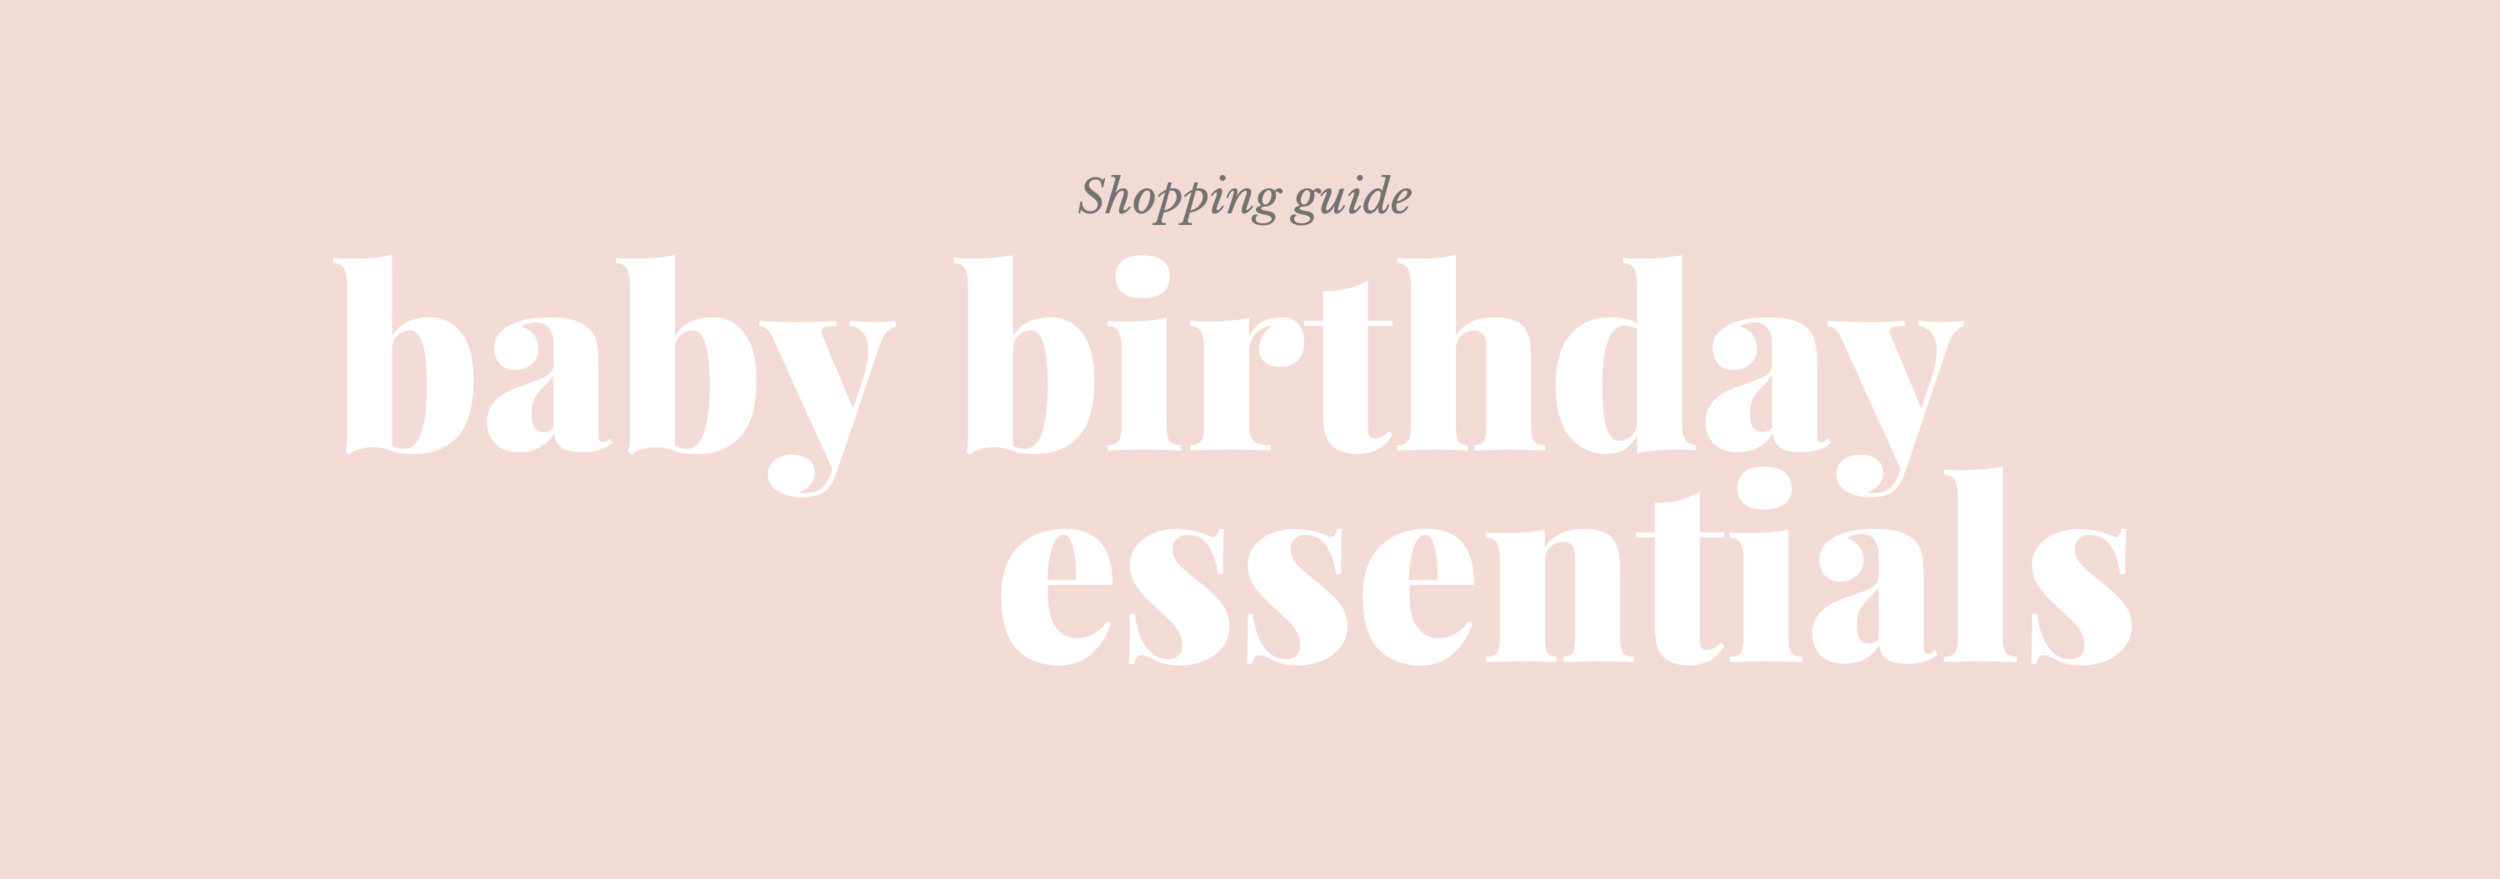 Shopping guide to baby's first birthday!